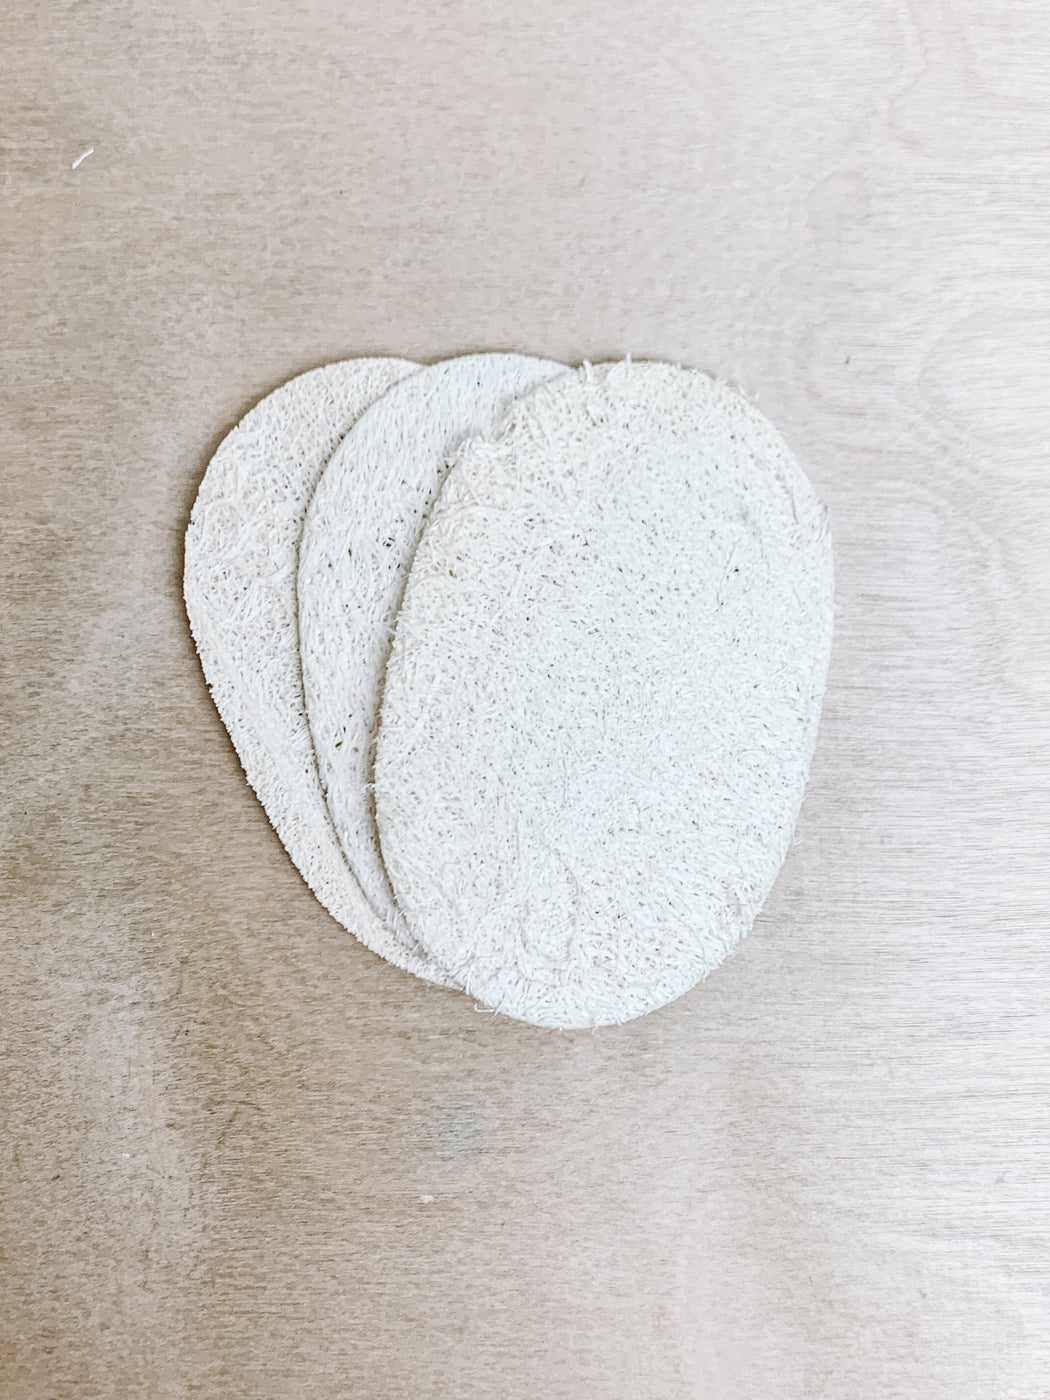 No Tox- Vegan Dish Sponge 3 pack